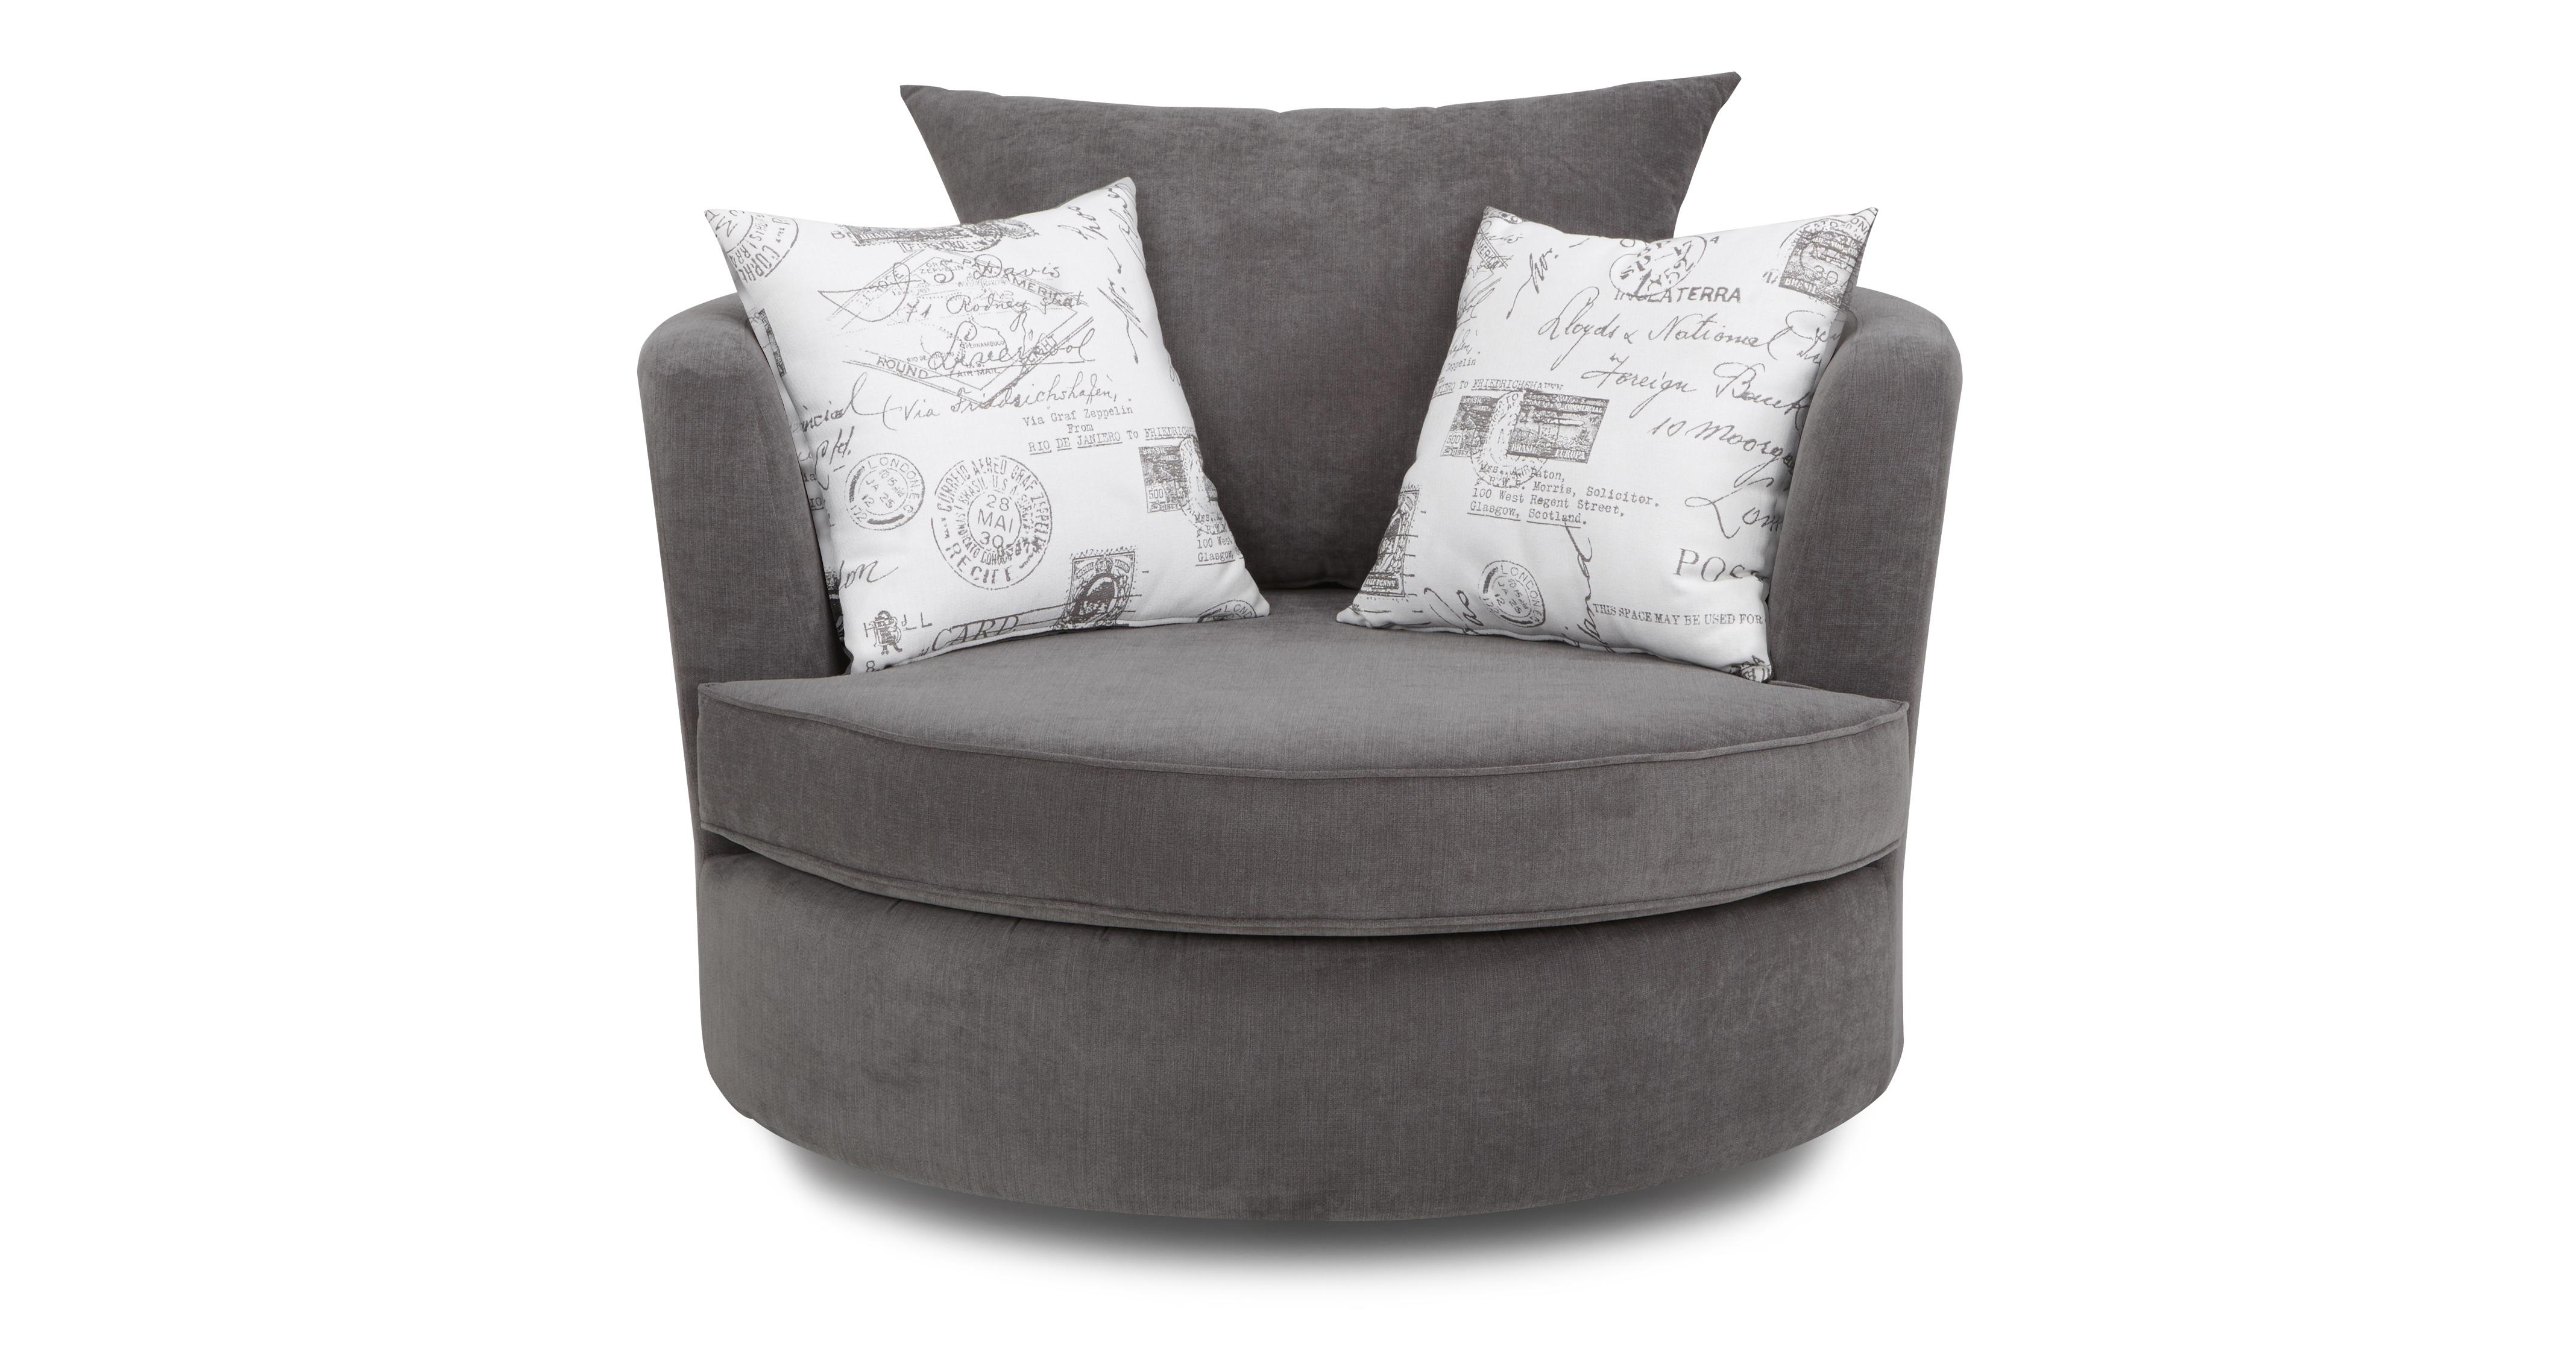 Large Swivel Chairs Living Room Large Swivel Chair Large Swivel Chair Used Destiny Shpock On Sich